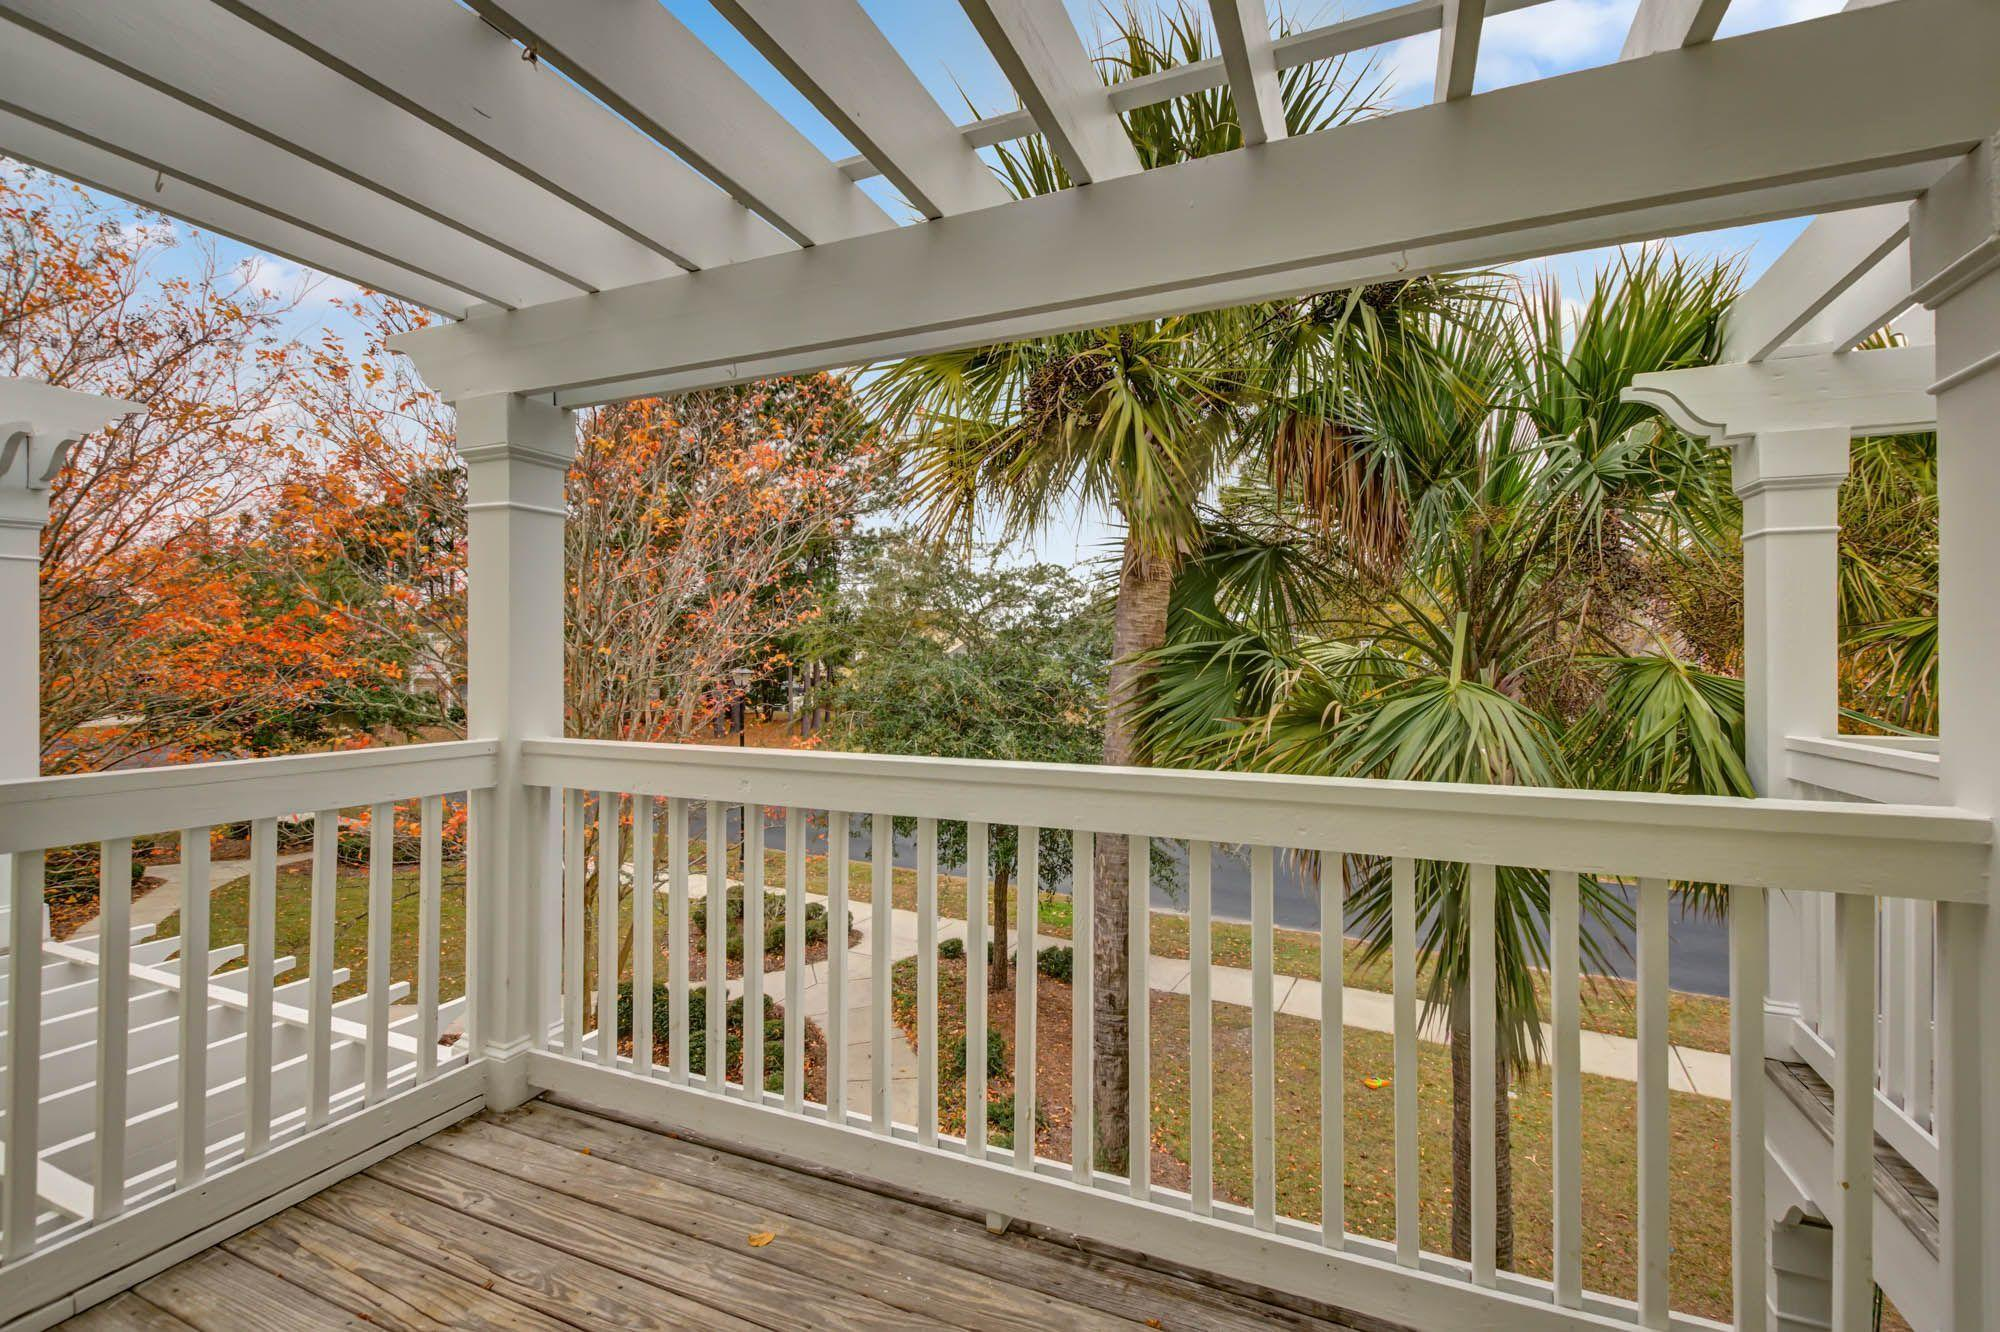 Whitney Lake Condos For Sale - 2926 Sugarberry, Johns Island, SC - 13